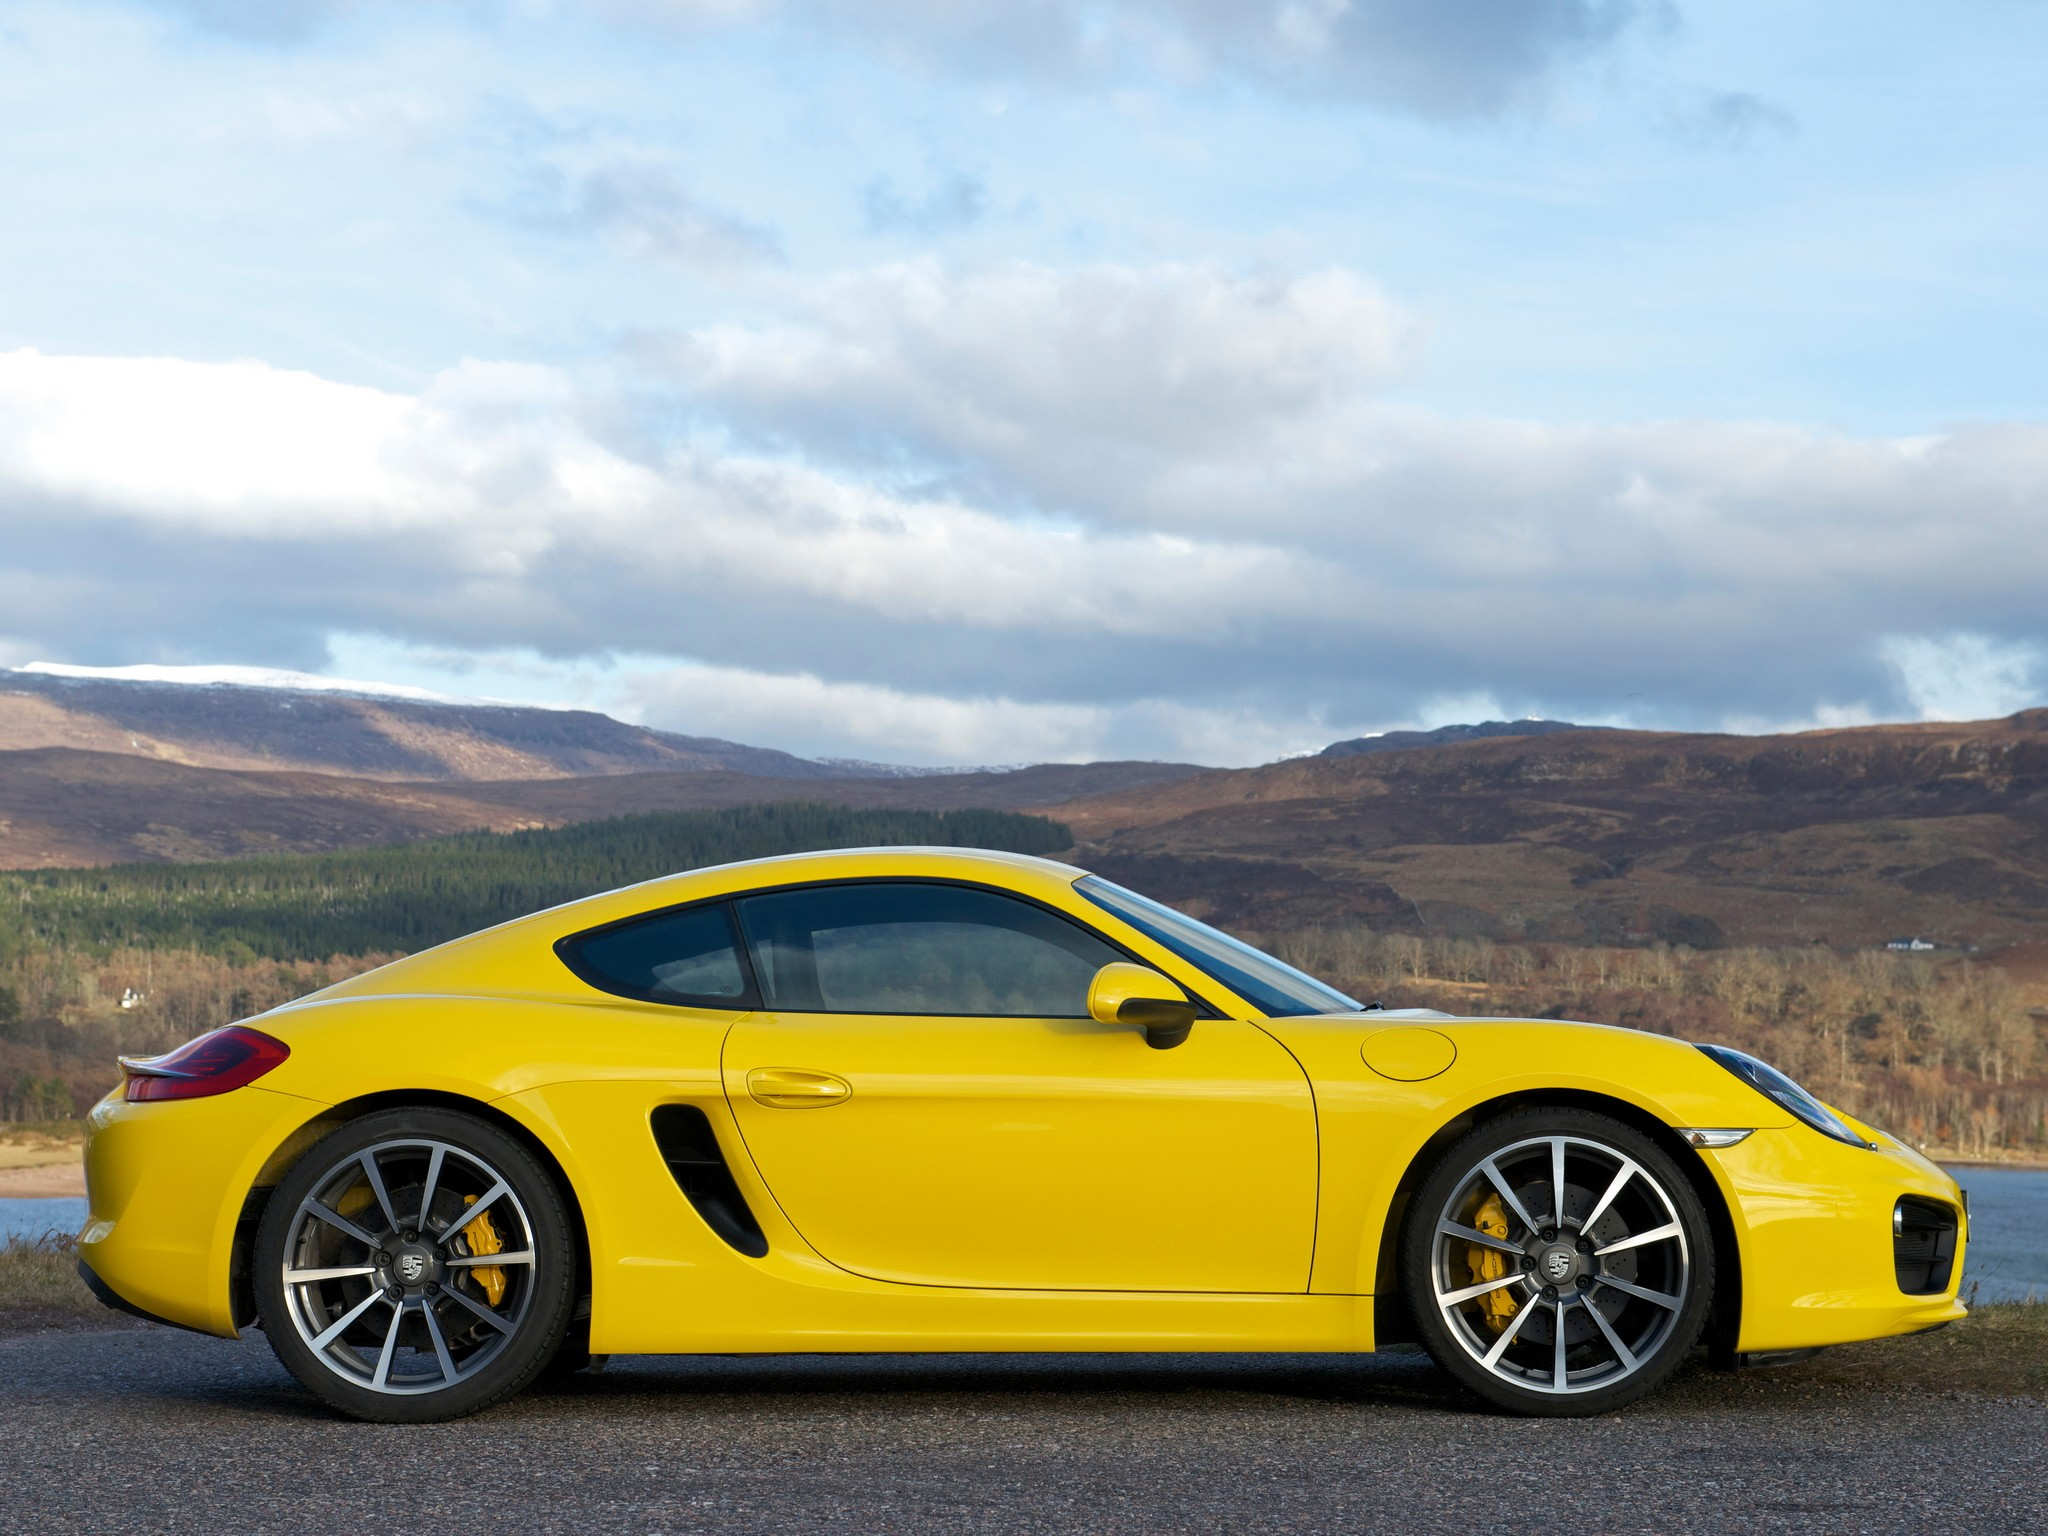 porsche cayman s 981 specs 2012 2013 2014 2015 2016 autoevolution. Black Bedroom Furniture Sets. Home Design Ideas